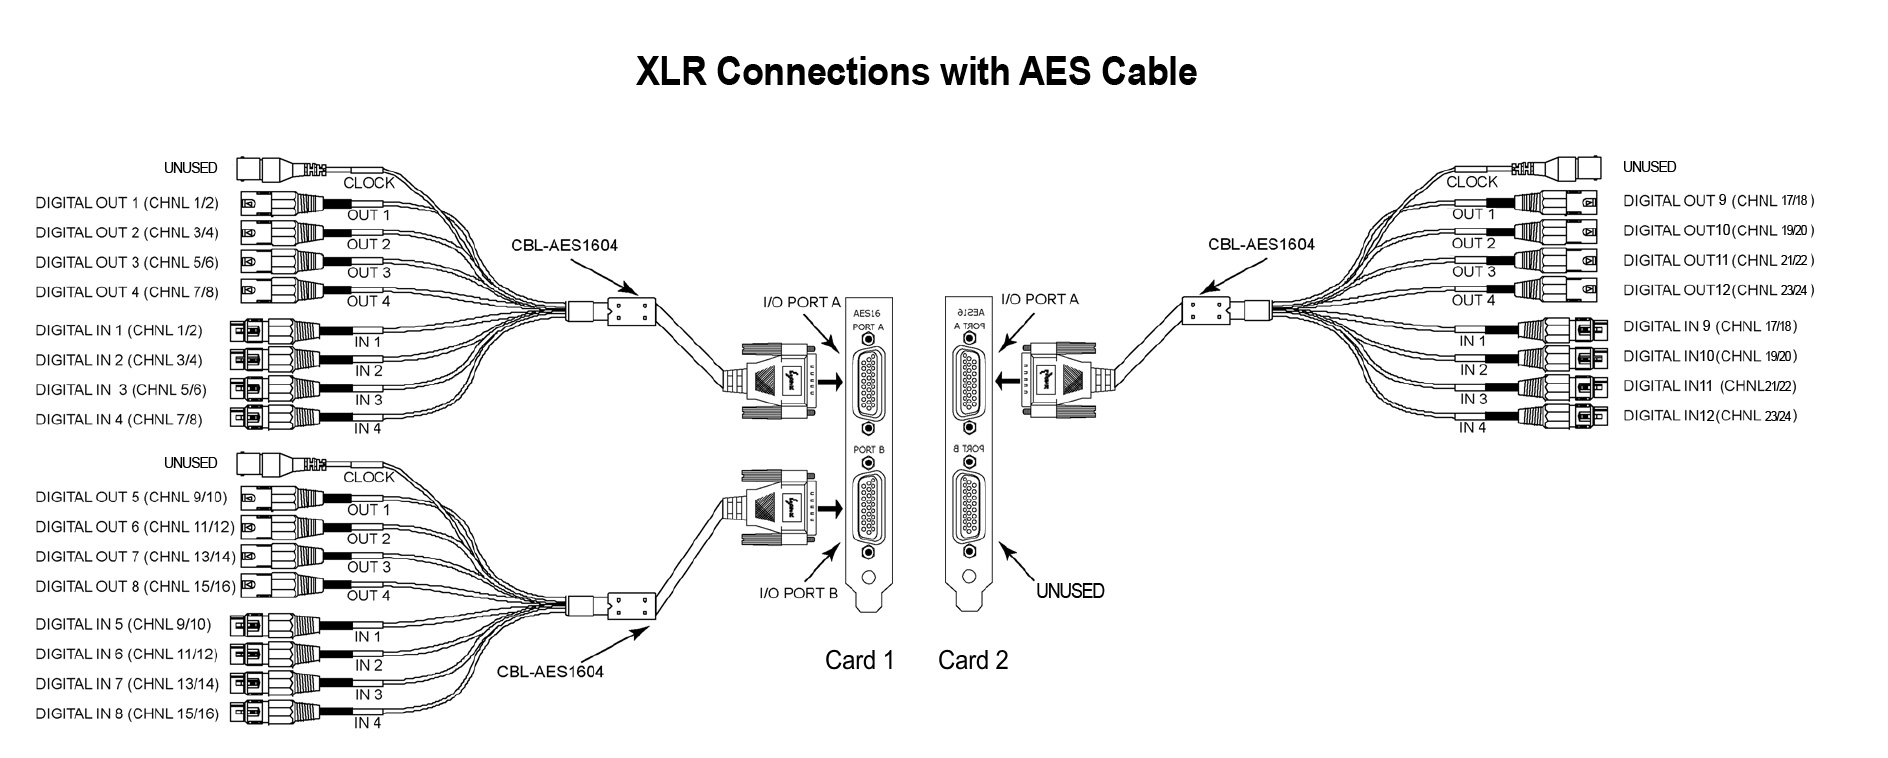 Phone Handset Or Headset Wiring Diagram likewise Usb To Headphone Jack Wiring Diagram together with HARDWARE 20INSTALLATION also Custom Audeze Balanced Headphone Cable besides Apple Earbud Wiring Diagram. on microphone cable wiring diagram